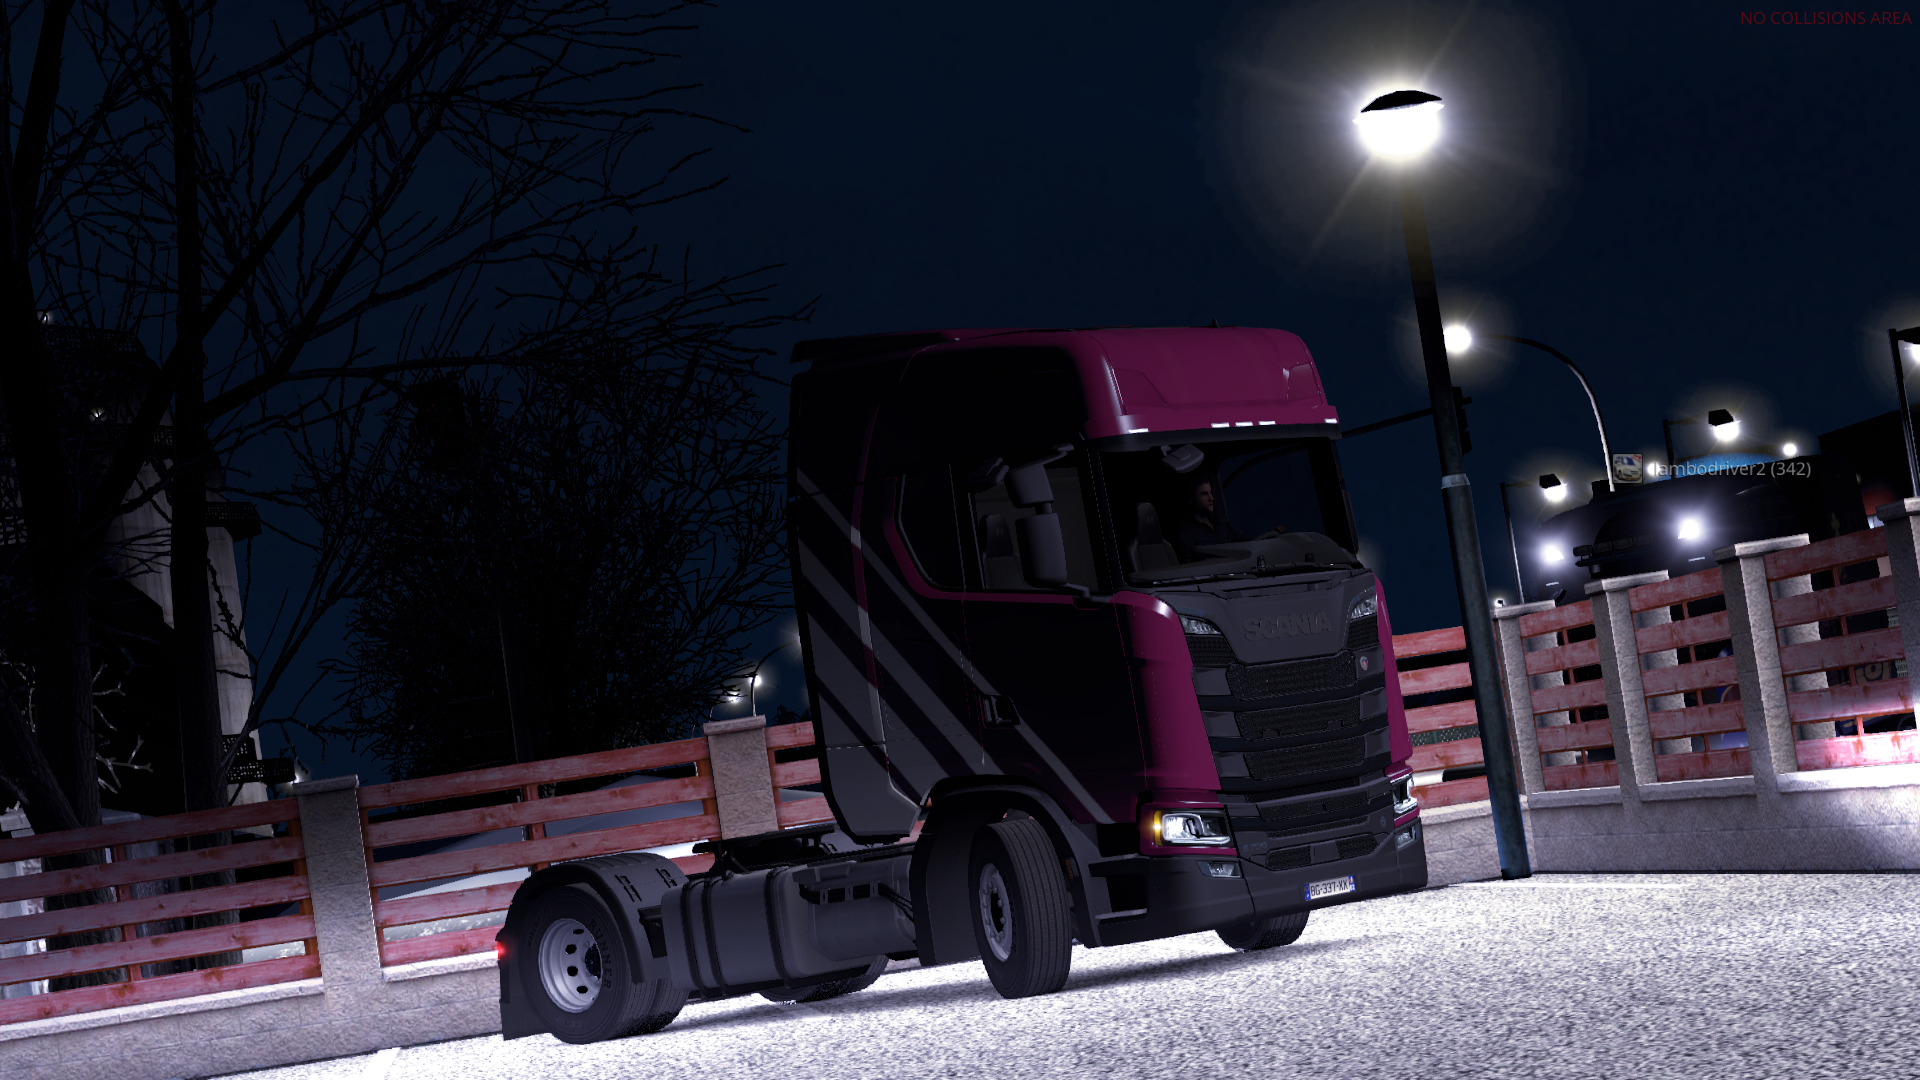 ets2_20190113_150301_00.png